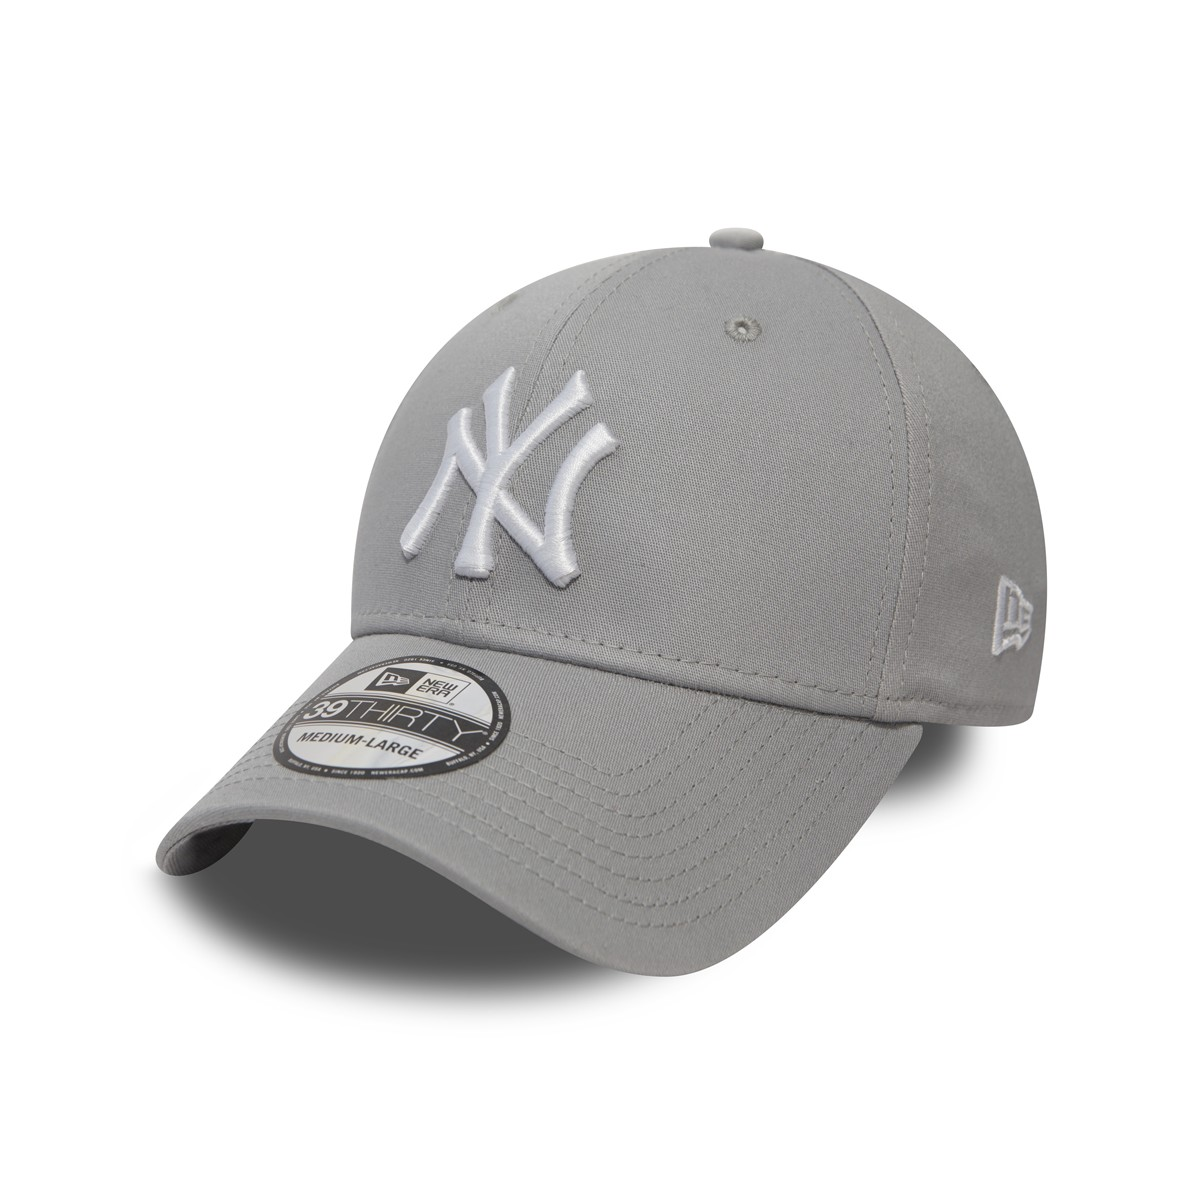 CAPPELLO NEW ERA 9FORTY KIDS LEAGUE BASIC NYY GRIGIO 9FORTY BASEBALL ... cacde2ccd577